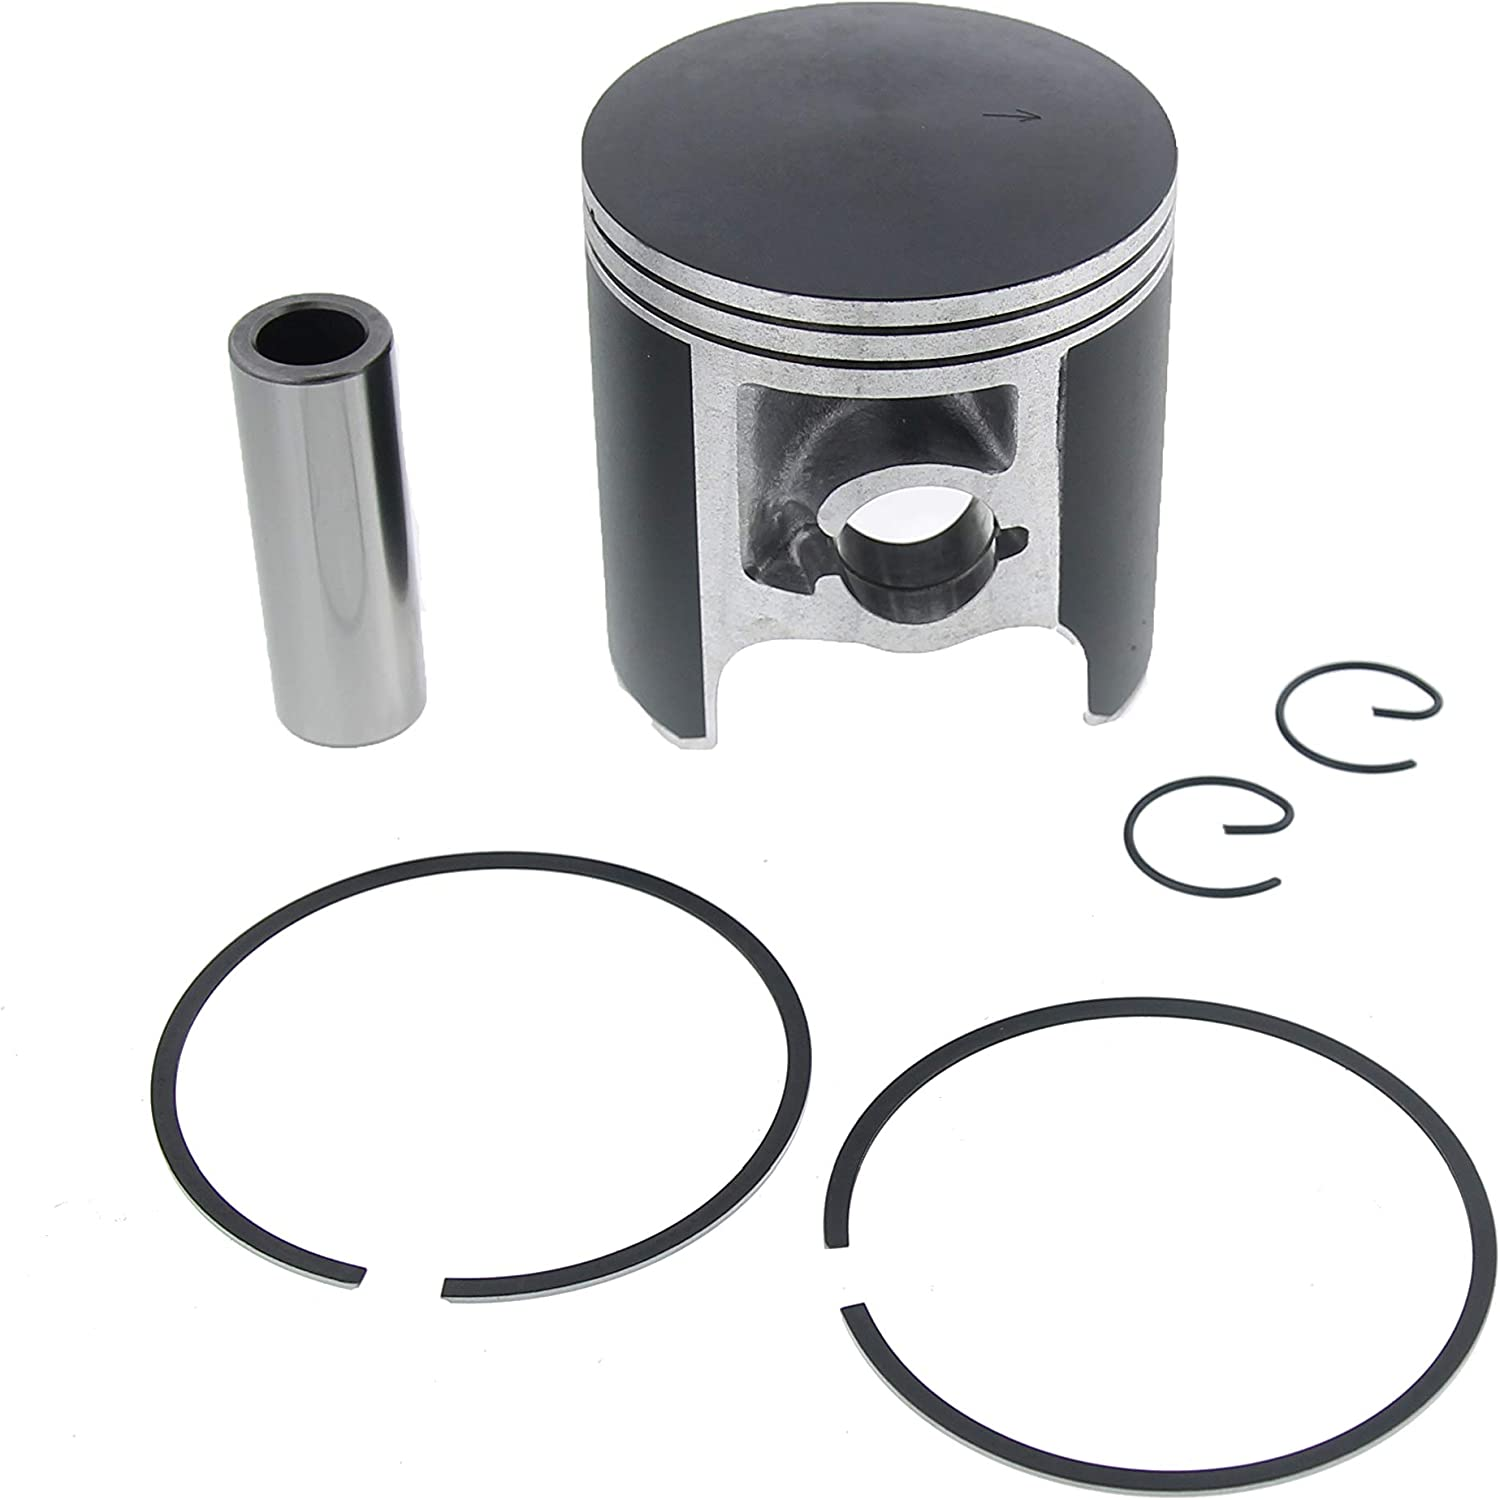 SPI 2 Piston Kits 1987-1993 Yamaha Exciter 570 EX570 Deluxe LE II SX ST Standard Bore 73mm 09-817N